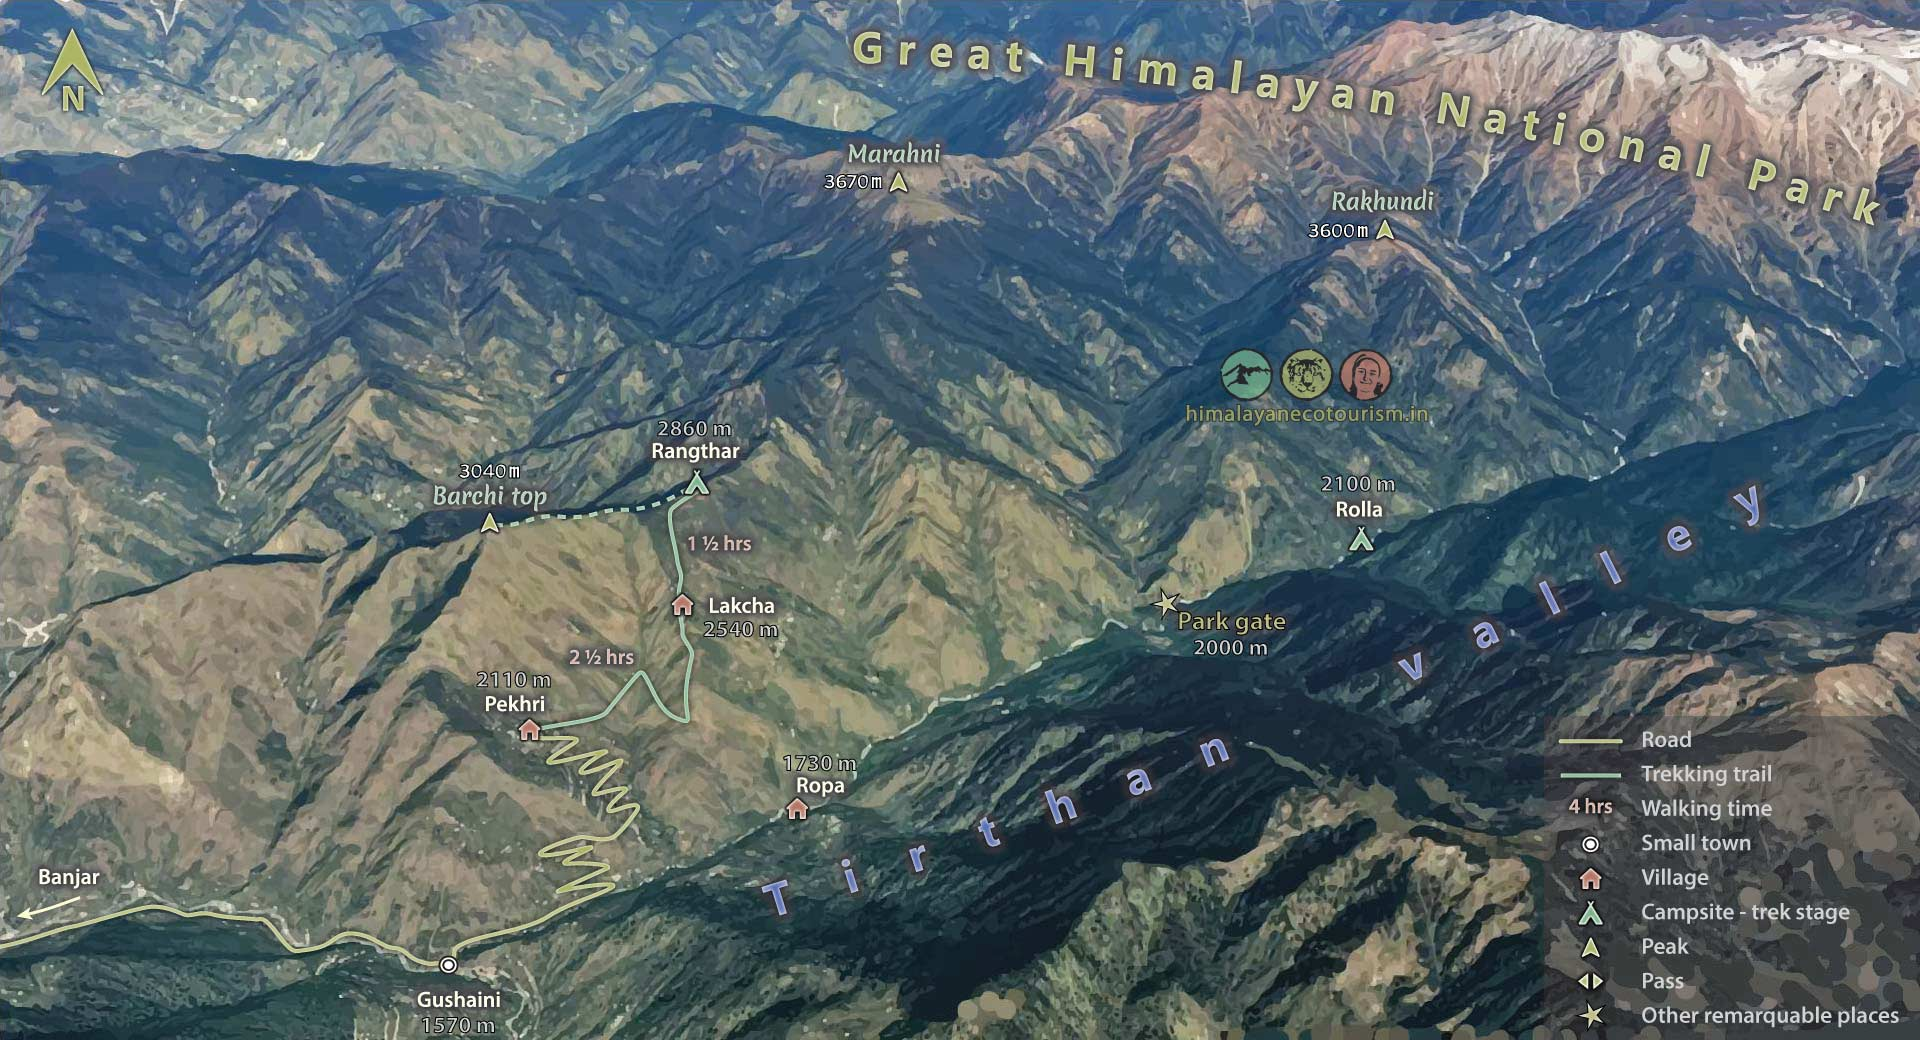 Rangthar trek map in the Great Himalayan National Park GHNP